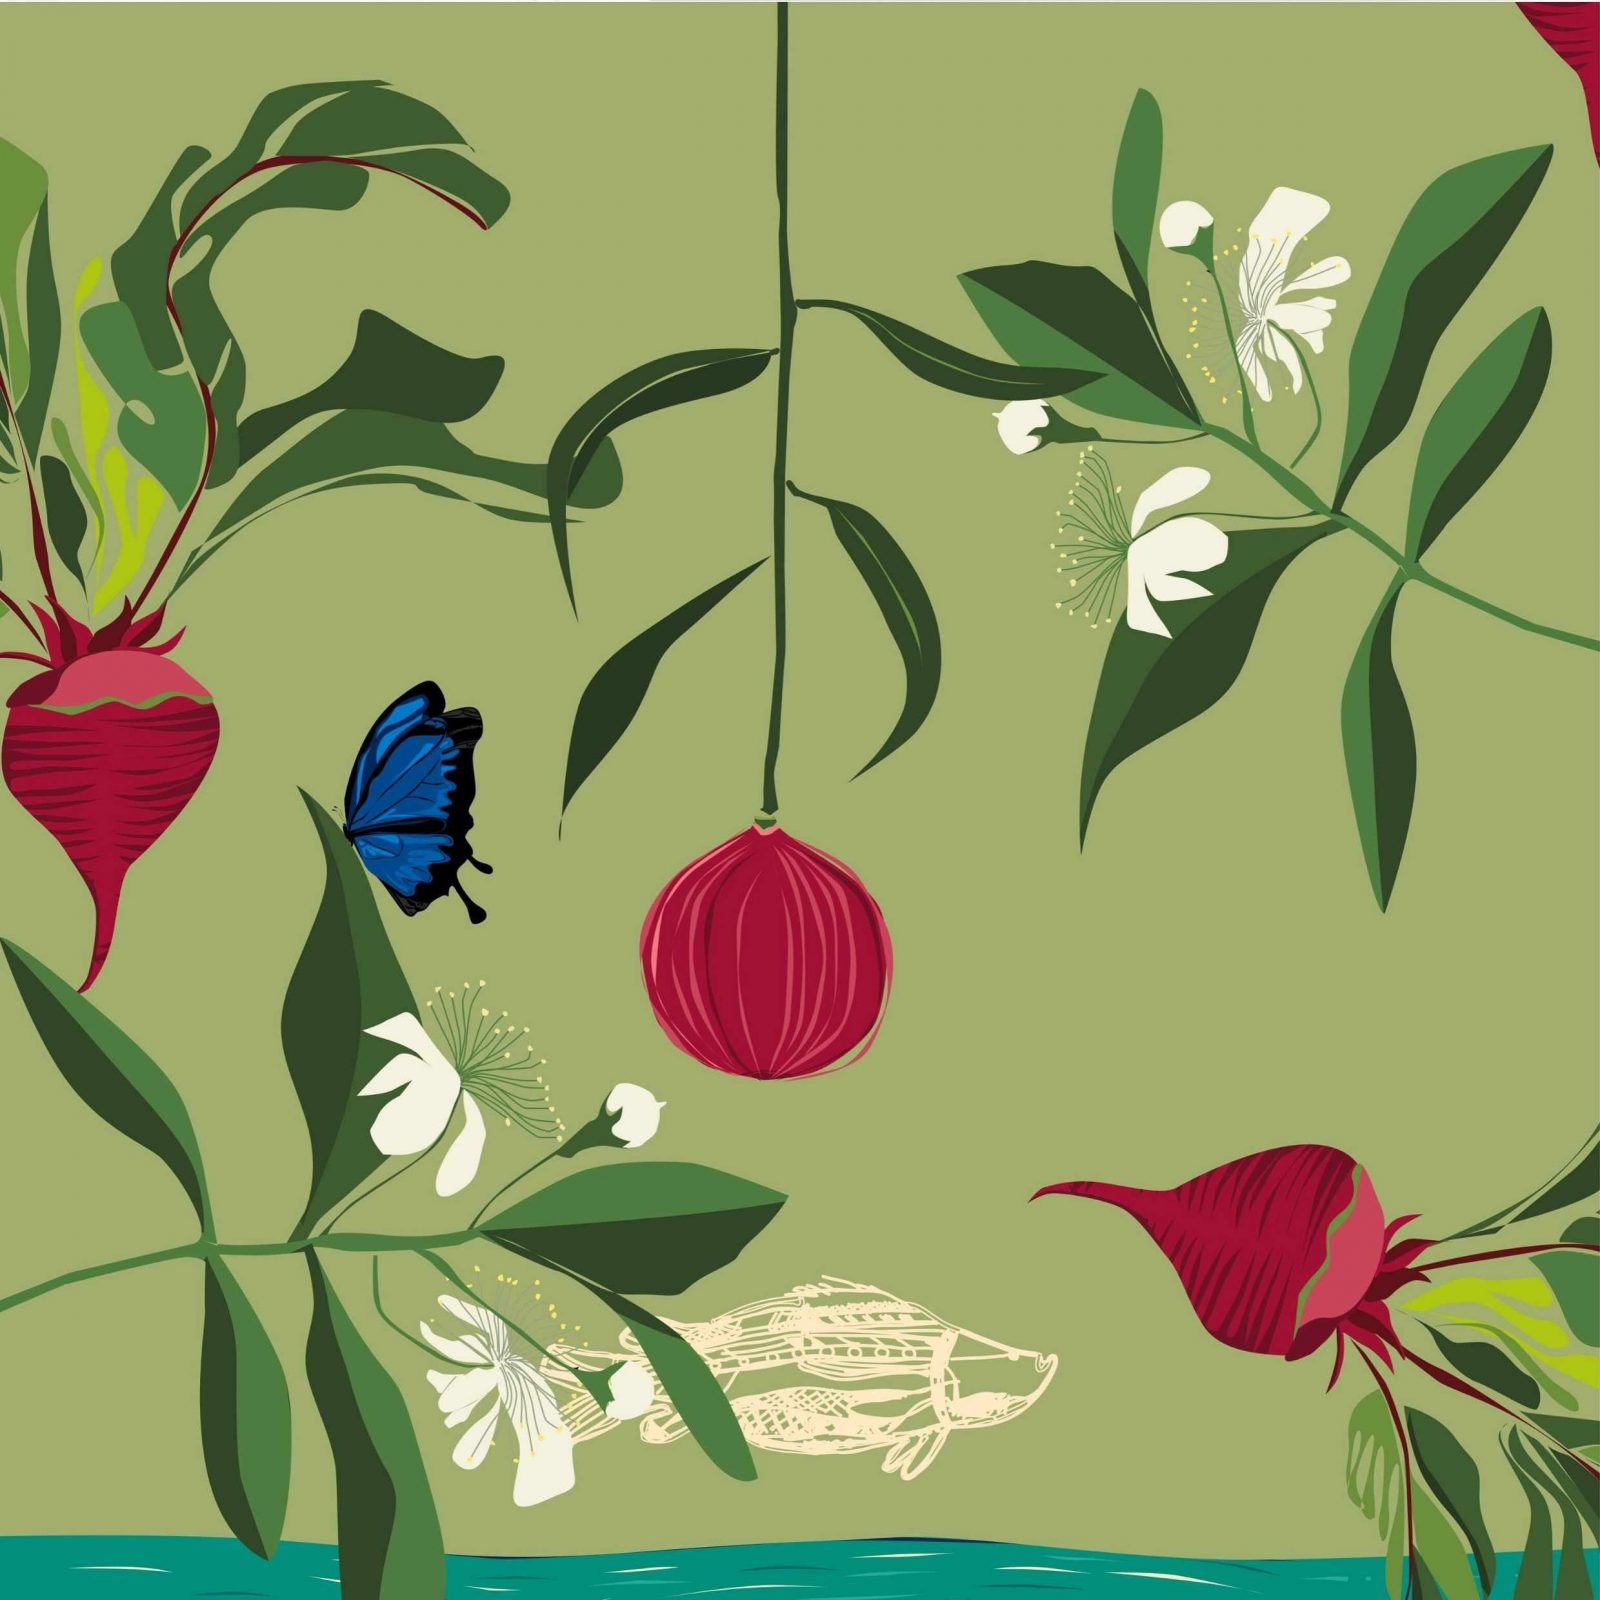 Green background with lemon myrtle, quandong, beetroot, Ulysses butterfly and a barramundi